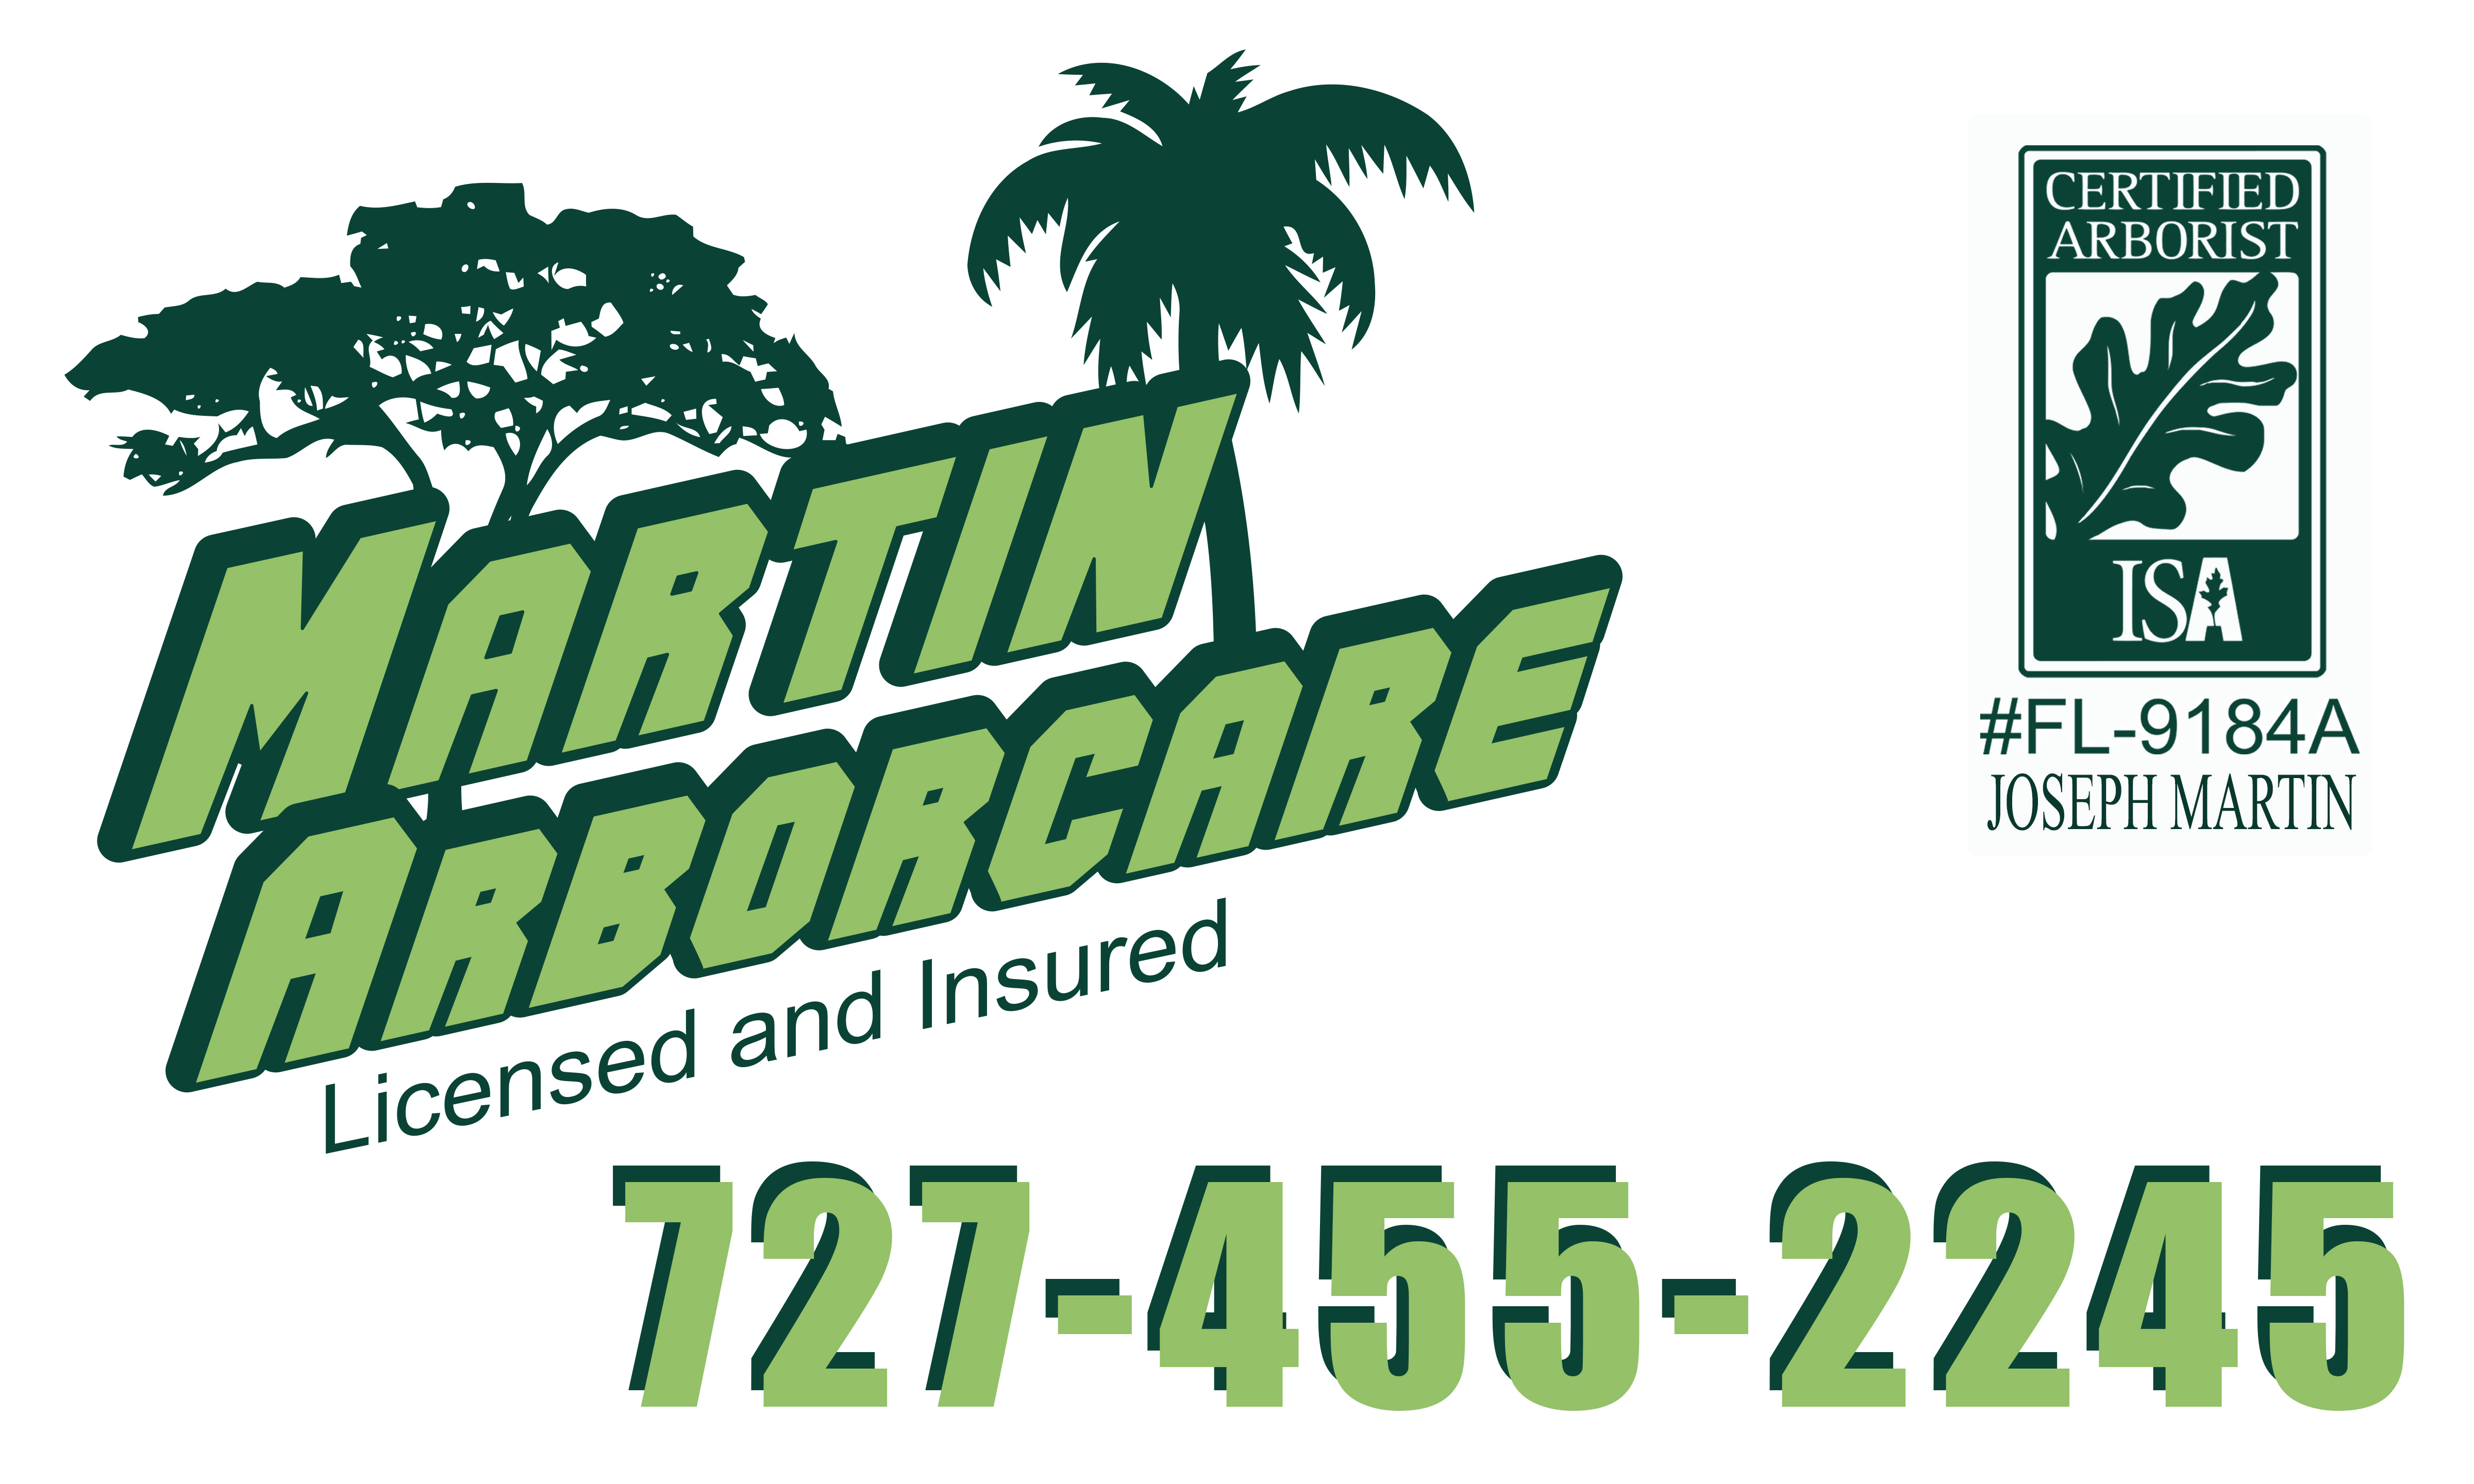 Martin Arborcare reviews | Tree Services at 3762 3rd Ave north - St. Petersburg FL